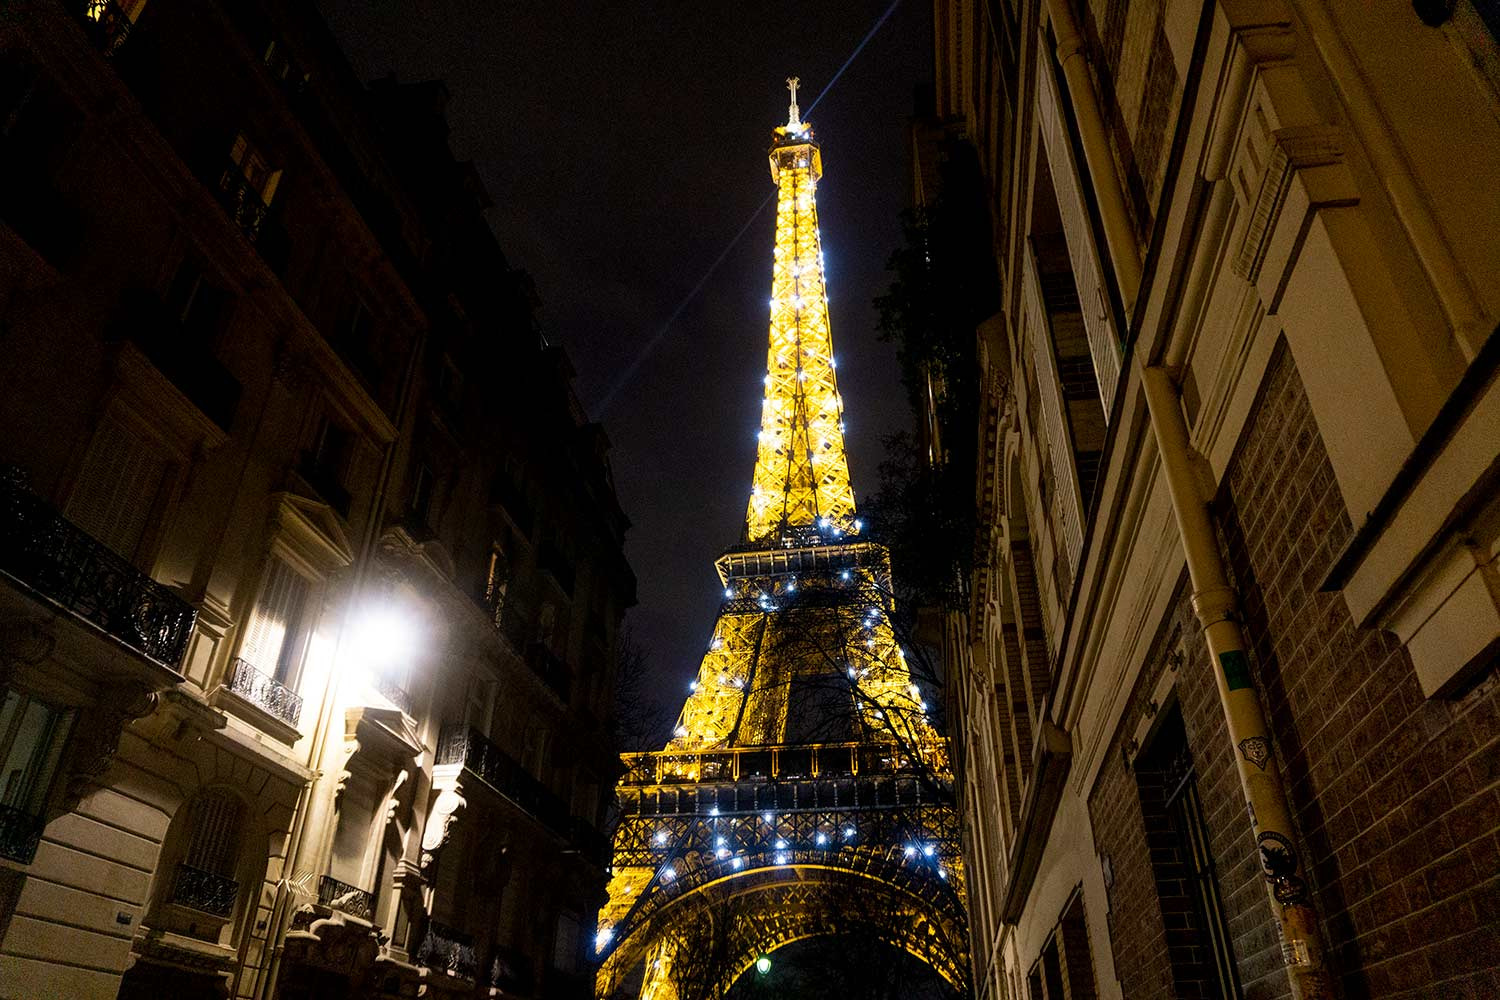 Night picture of the twinkling Eiffel Tower from a side street in Paris, France.